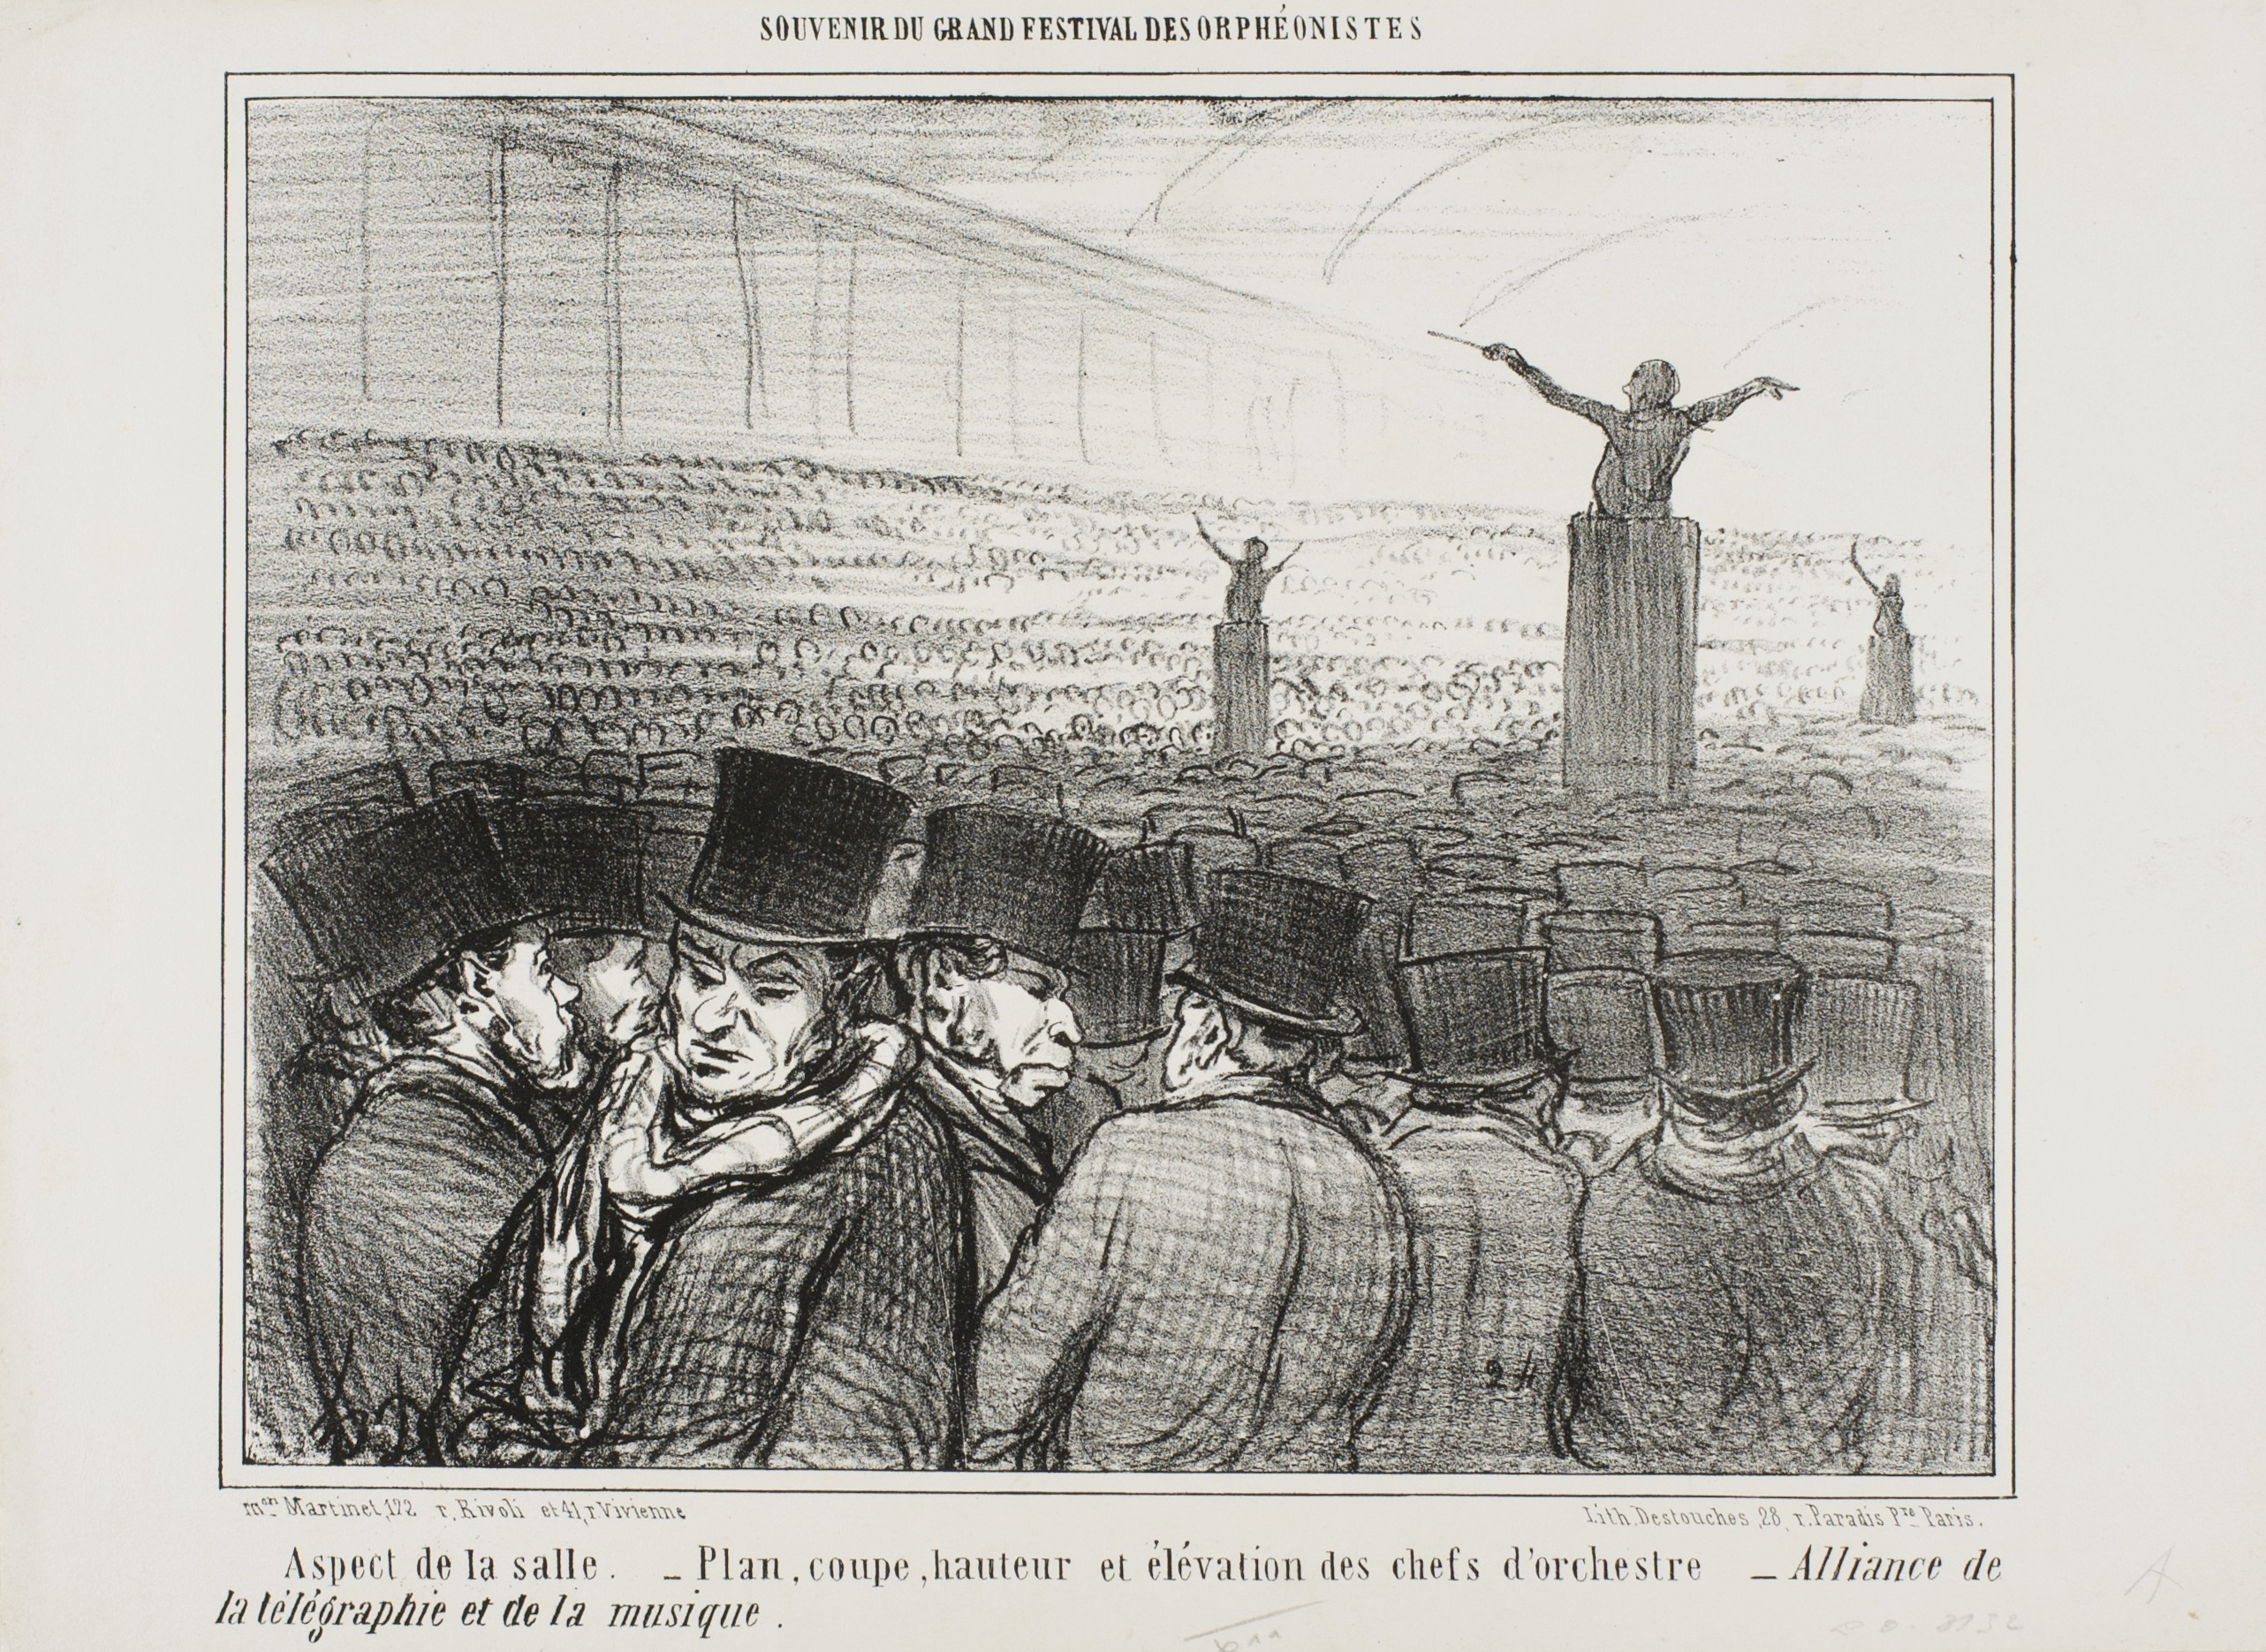 Fig. 14. Honoré Daumier, Souvenir du Grand Festival des Orphéonistes. Aspect de la salle. – Plan, coupe, hauteur et élévation des chefs d'orchestre – Alliance de la télégraphie et de la musique, published in Le Charivari, 2 April 1859, lithograph in black on white wove paper, 20.8 x 26.5cm. William McCallin McKee Memorial Endowment 1953.591. The Art Institute of Chicago